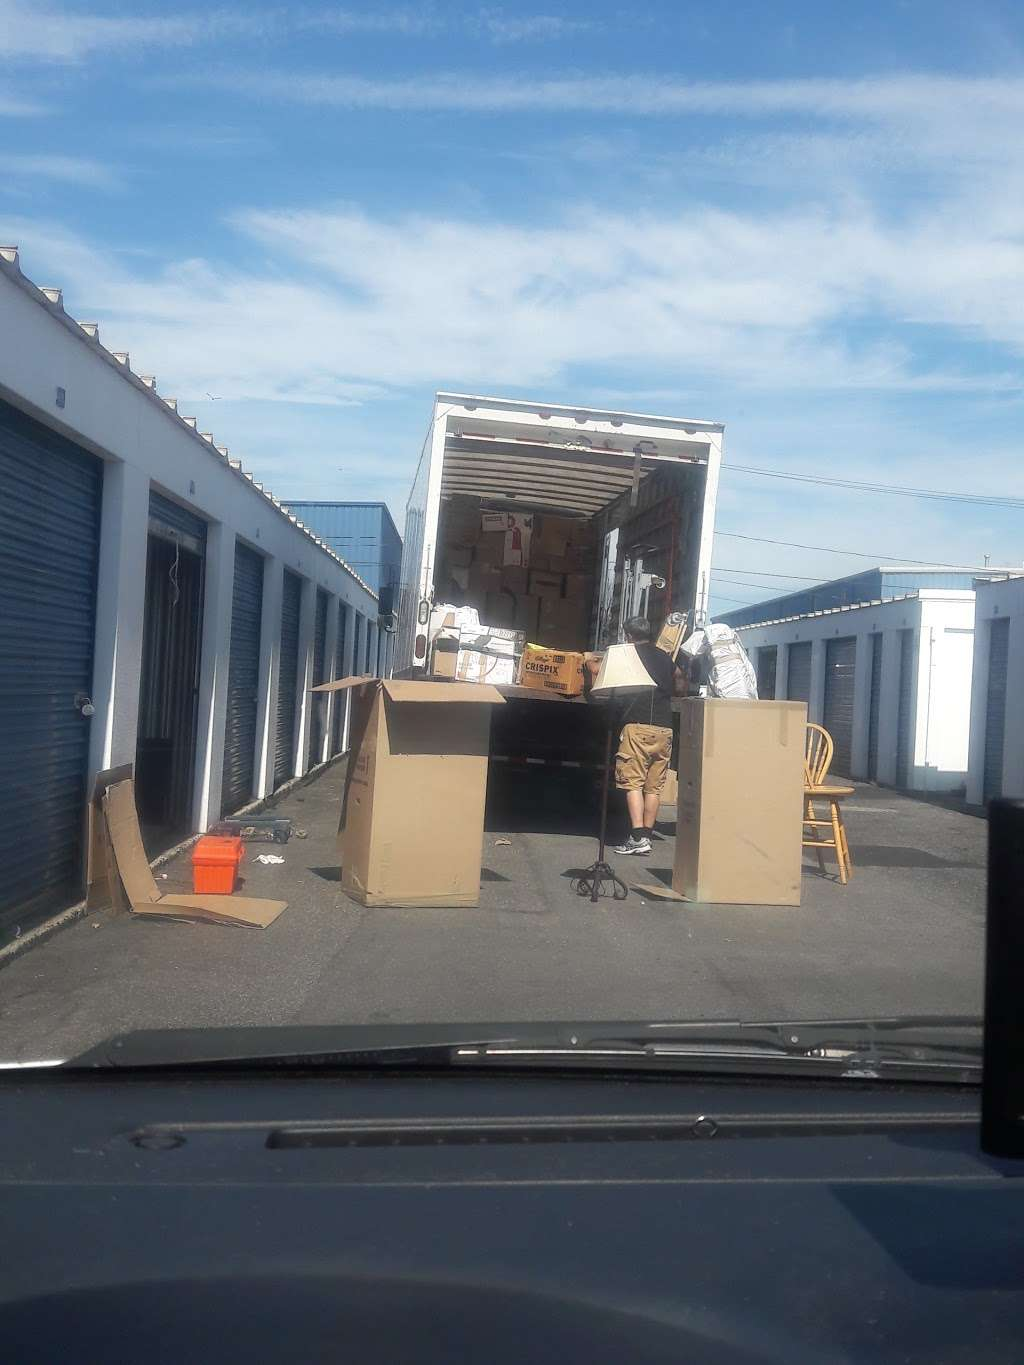 US Storage Centers - moving company  | Photo 4 of 8 | Address: 51 Broad Ave, Fairview, NJ 07022, USA | Phone: (201) 308-1946